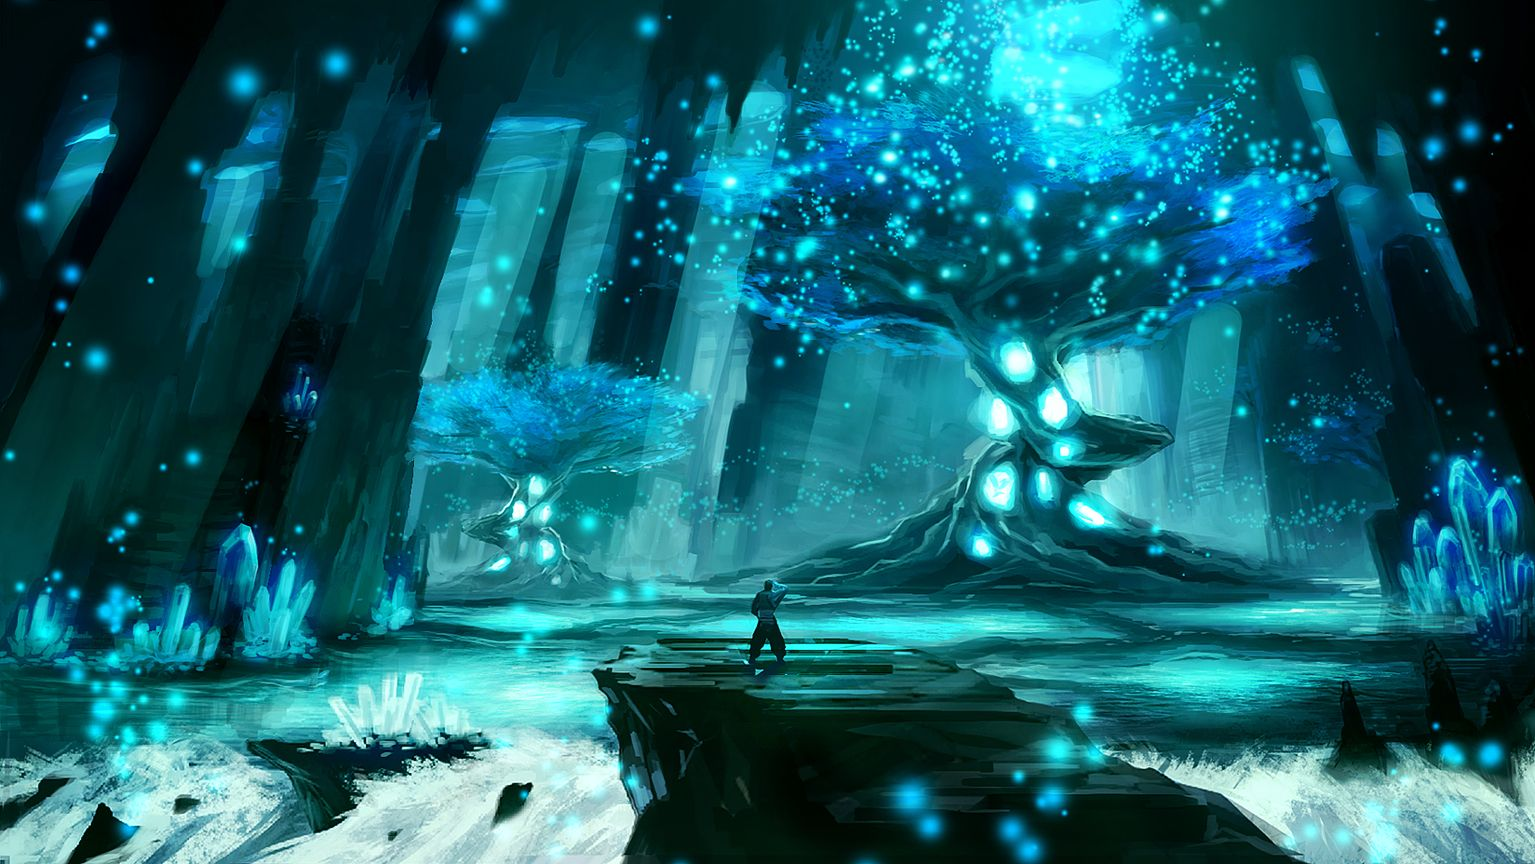 underwater caves crystal caves fantasy pictures fantasy world fantasy ...